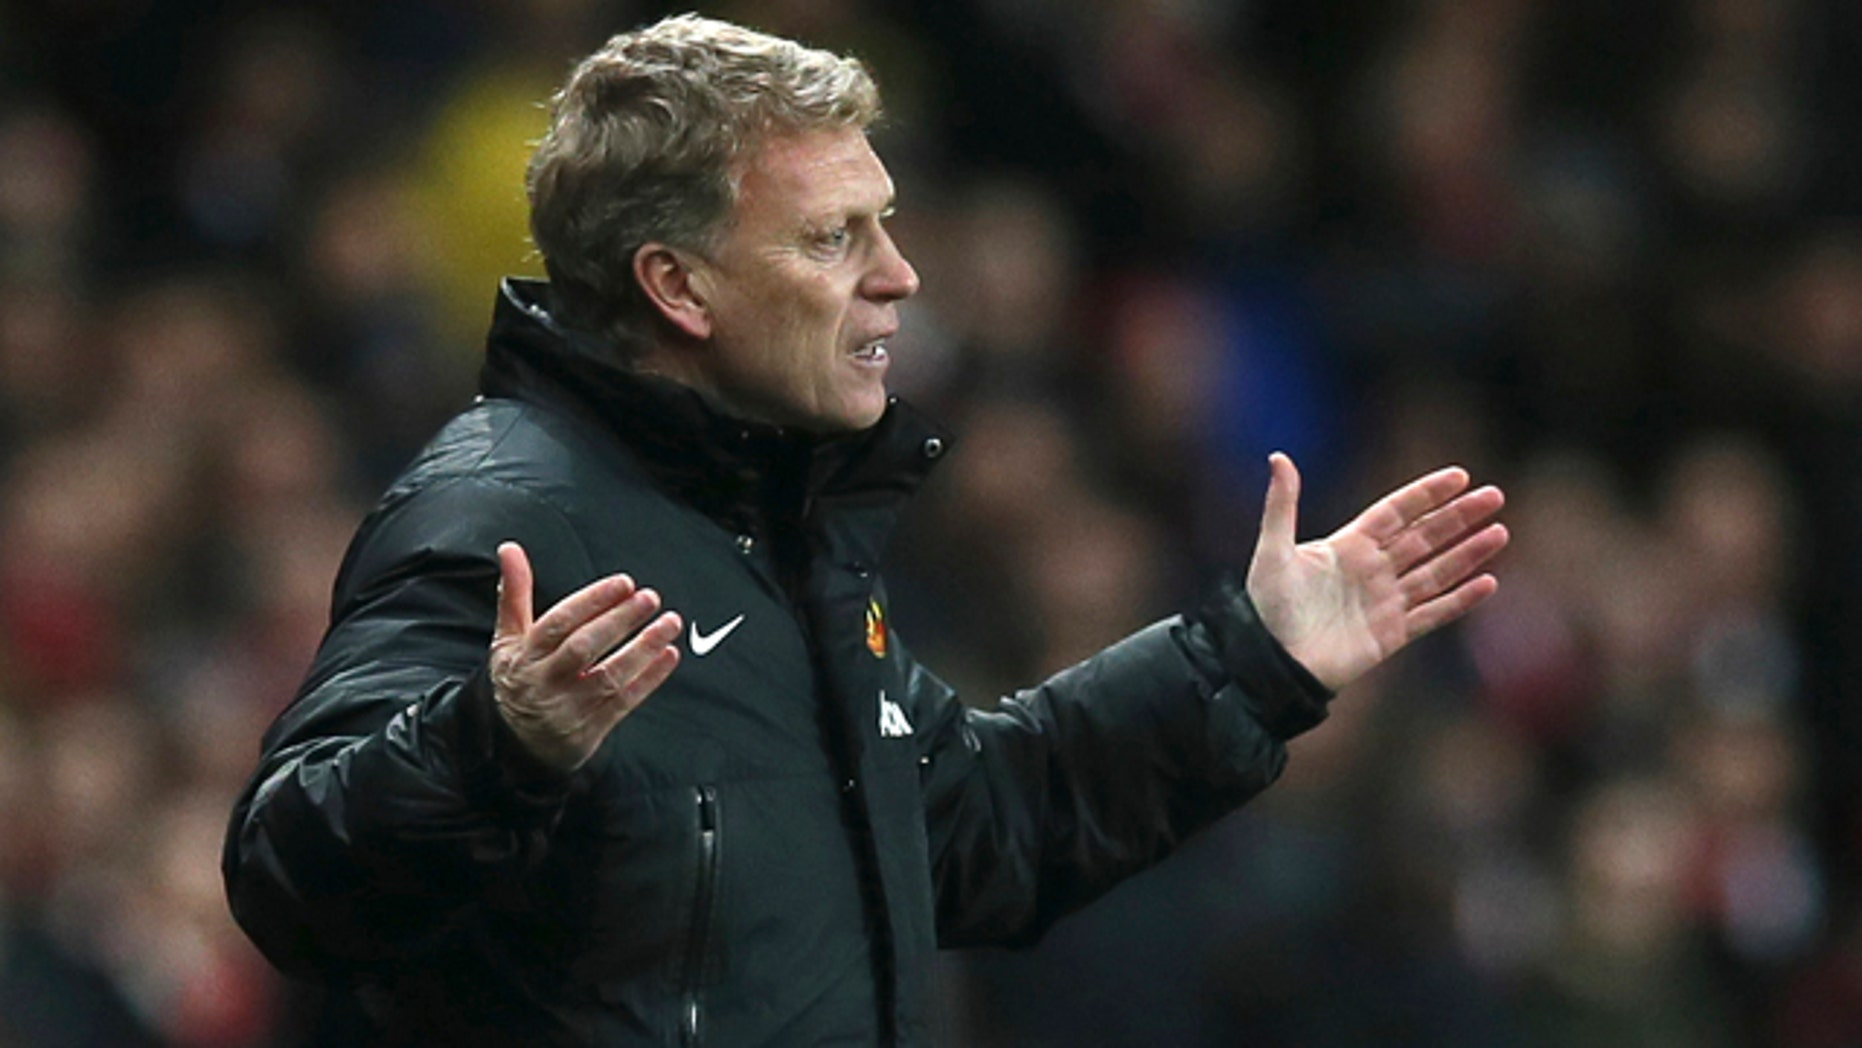 FILE - In this Wednesday, Feb. 12, 2014 file photo Manchester United's manager David Moyes gestures to his team during their English Premier League soccer match between Arsenal and Manchester United at the Emirates stadium in London. Manchester United says manager David Moyes has left the Premier League club after less than a year in charge, amid heavy speculation he was about to be fired. (AP Photo/Alastair Grant, File)